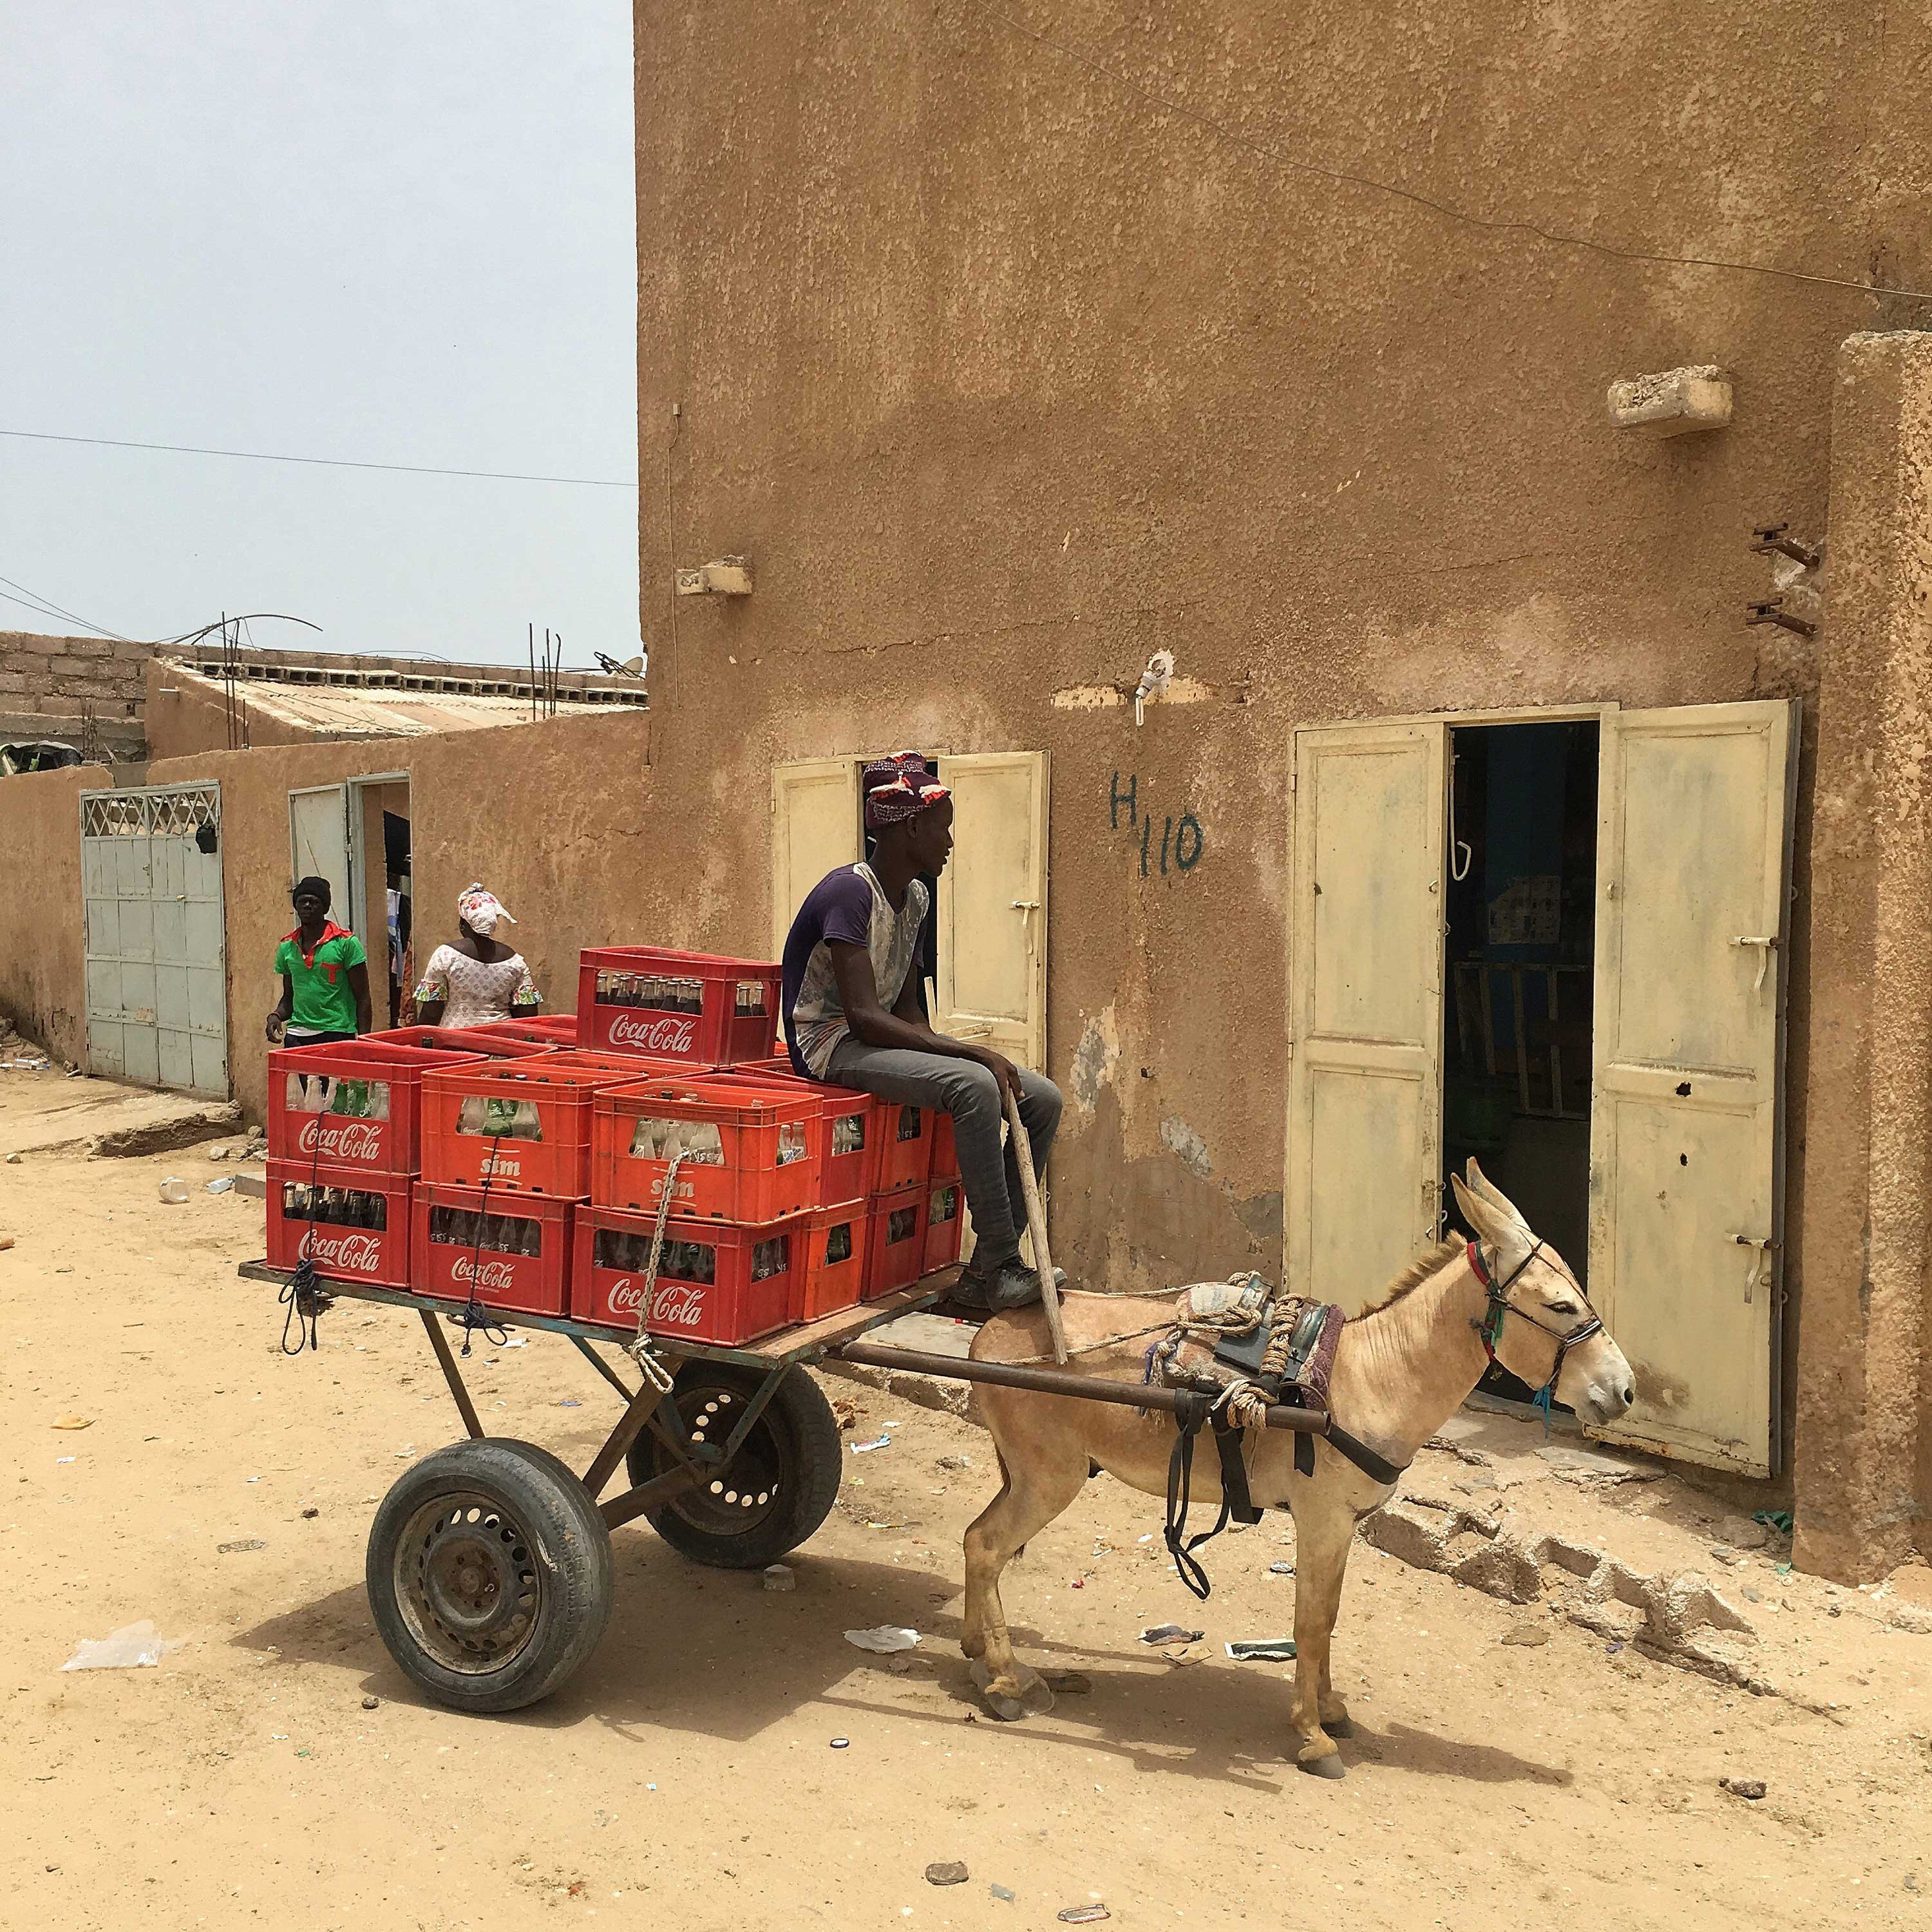 Aziz makes [f500link]Coca-Cola[/f500link] deliveries with his donkey in Nouakchott, Mauritania.